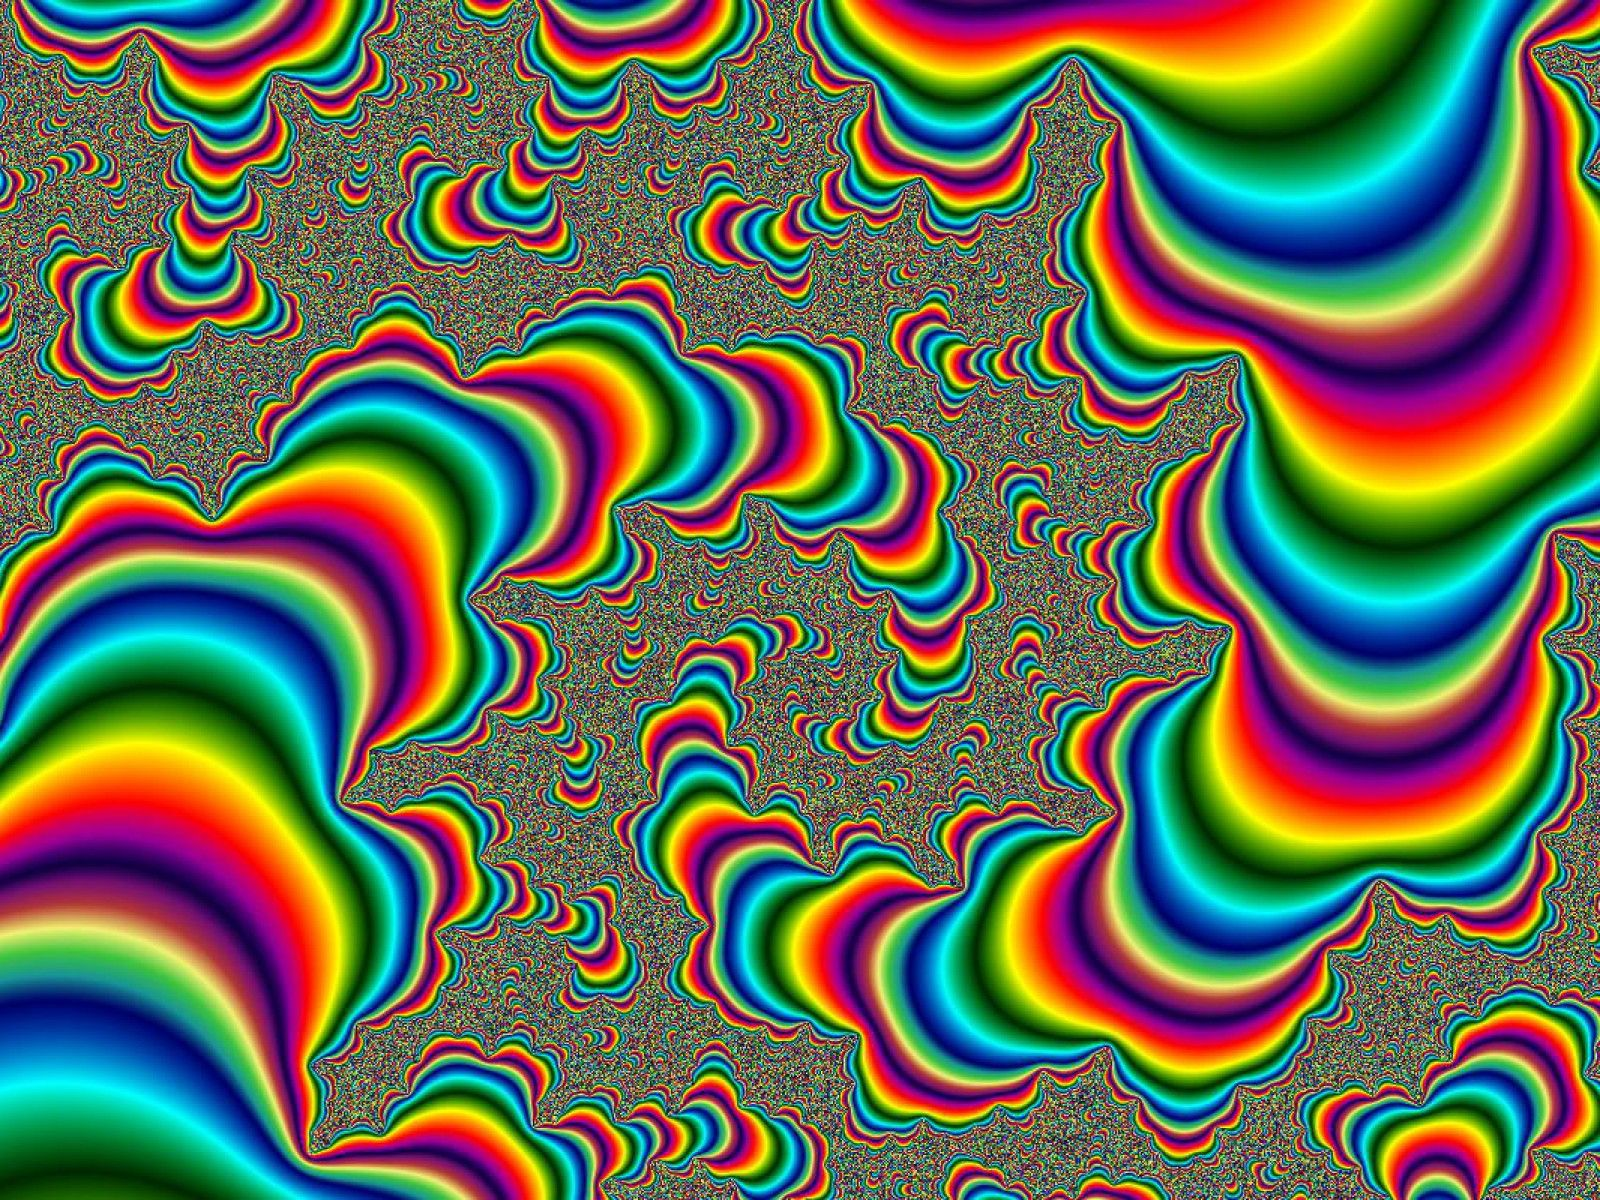 Falling Weed Live Wallpaper For Computer Trippy Moving Illusions Backgrounds Trippy Moving